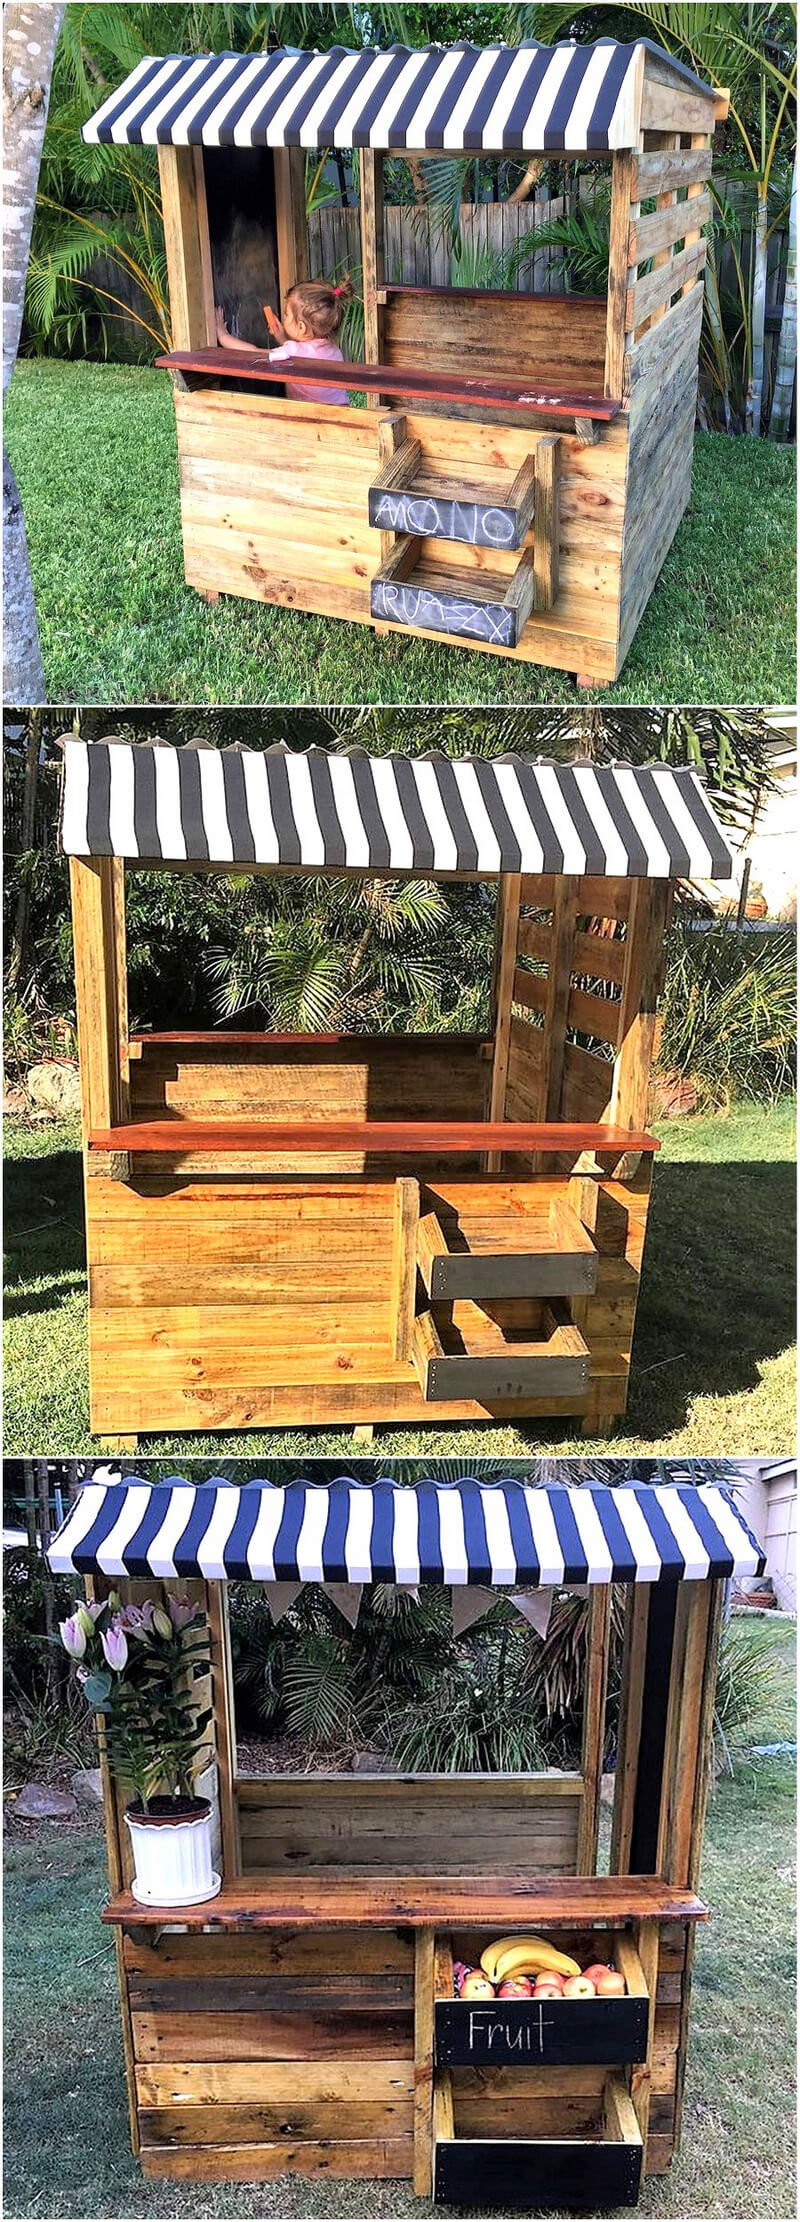 Creative Diy Wooden Pallets Recycling Ideas Wood Pallet Furniture